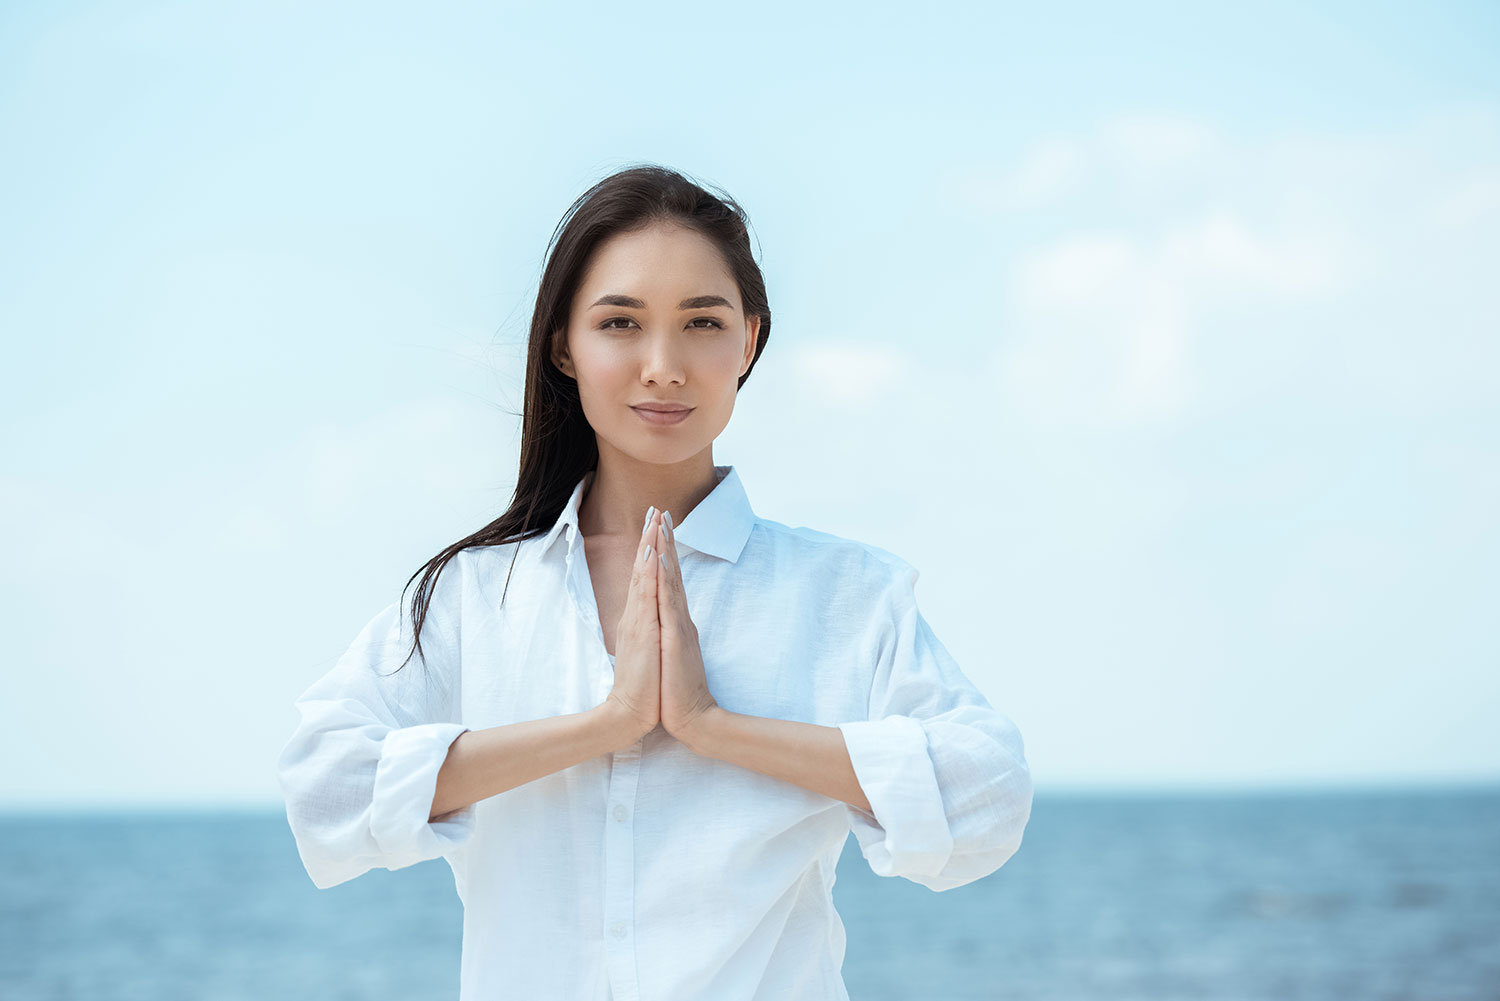 Anjali Mudra - Learn the Deeper Meaning and Benefits of this Simple Mudra